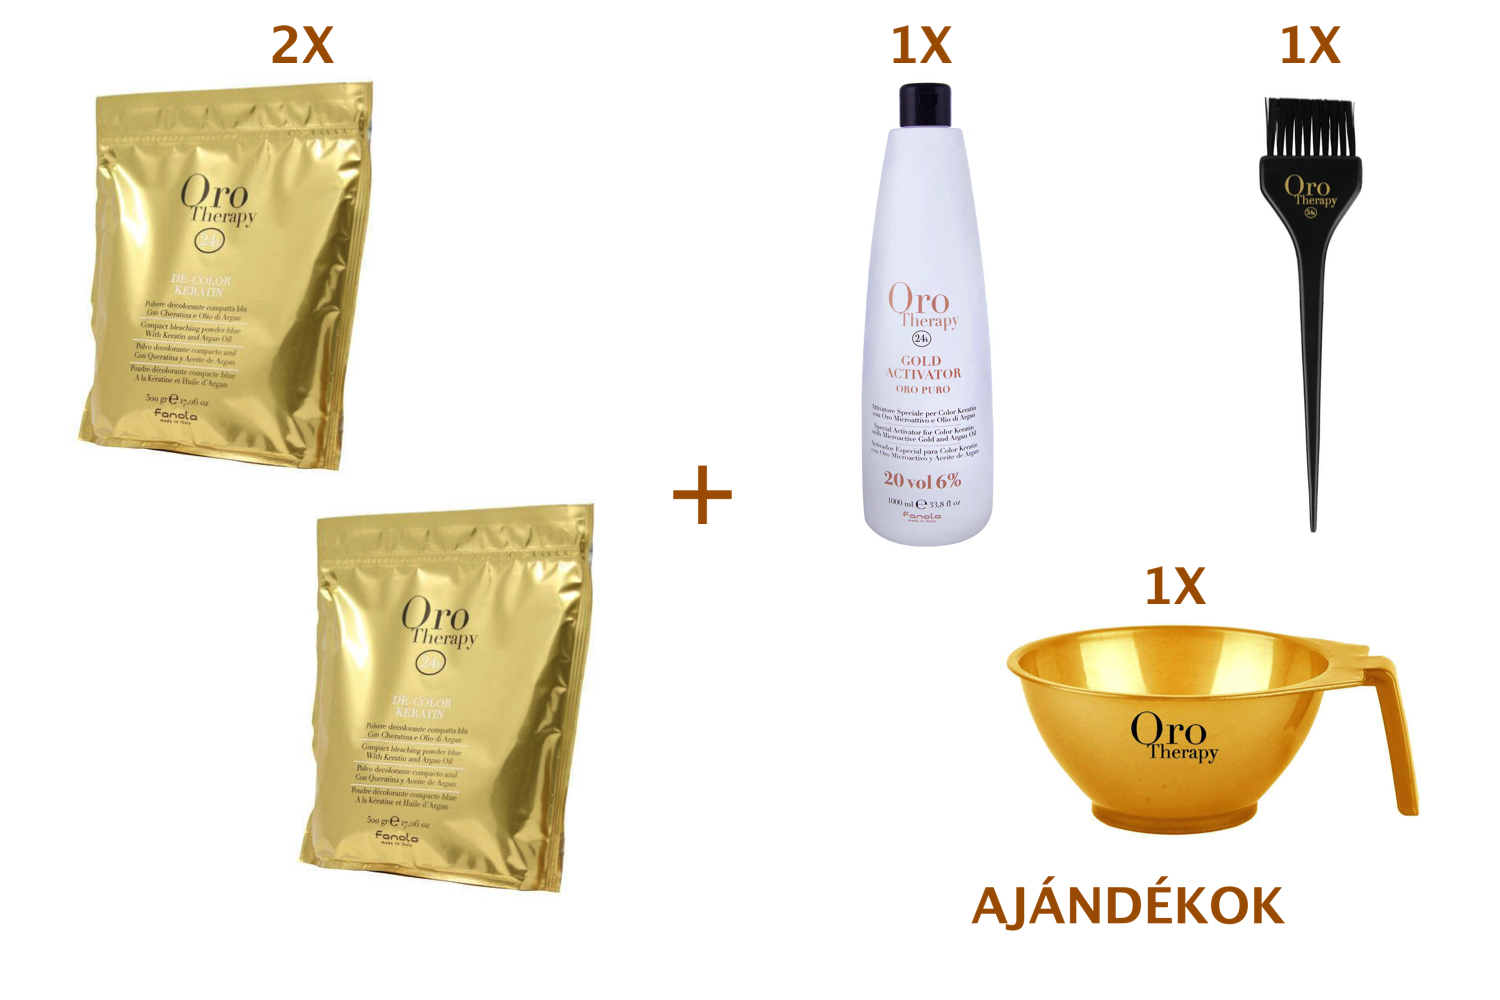 FANOLA ORO Therapy 24K Compact Bleaching Powder Blue 500 g 2+3 AKCIÓ